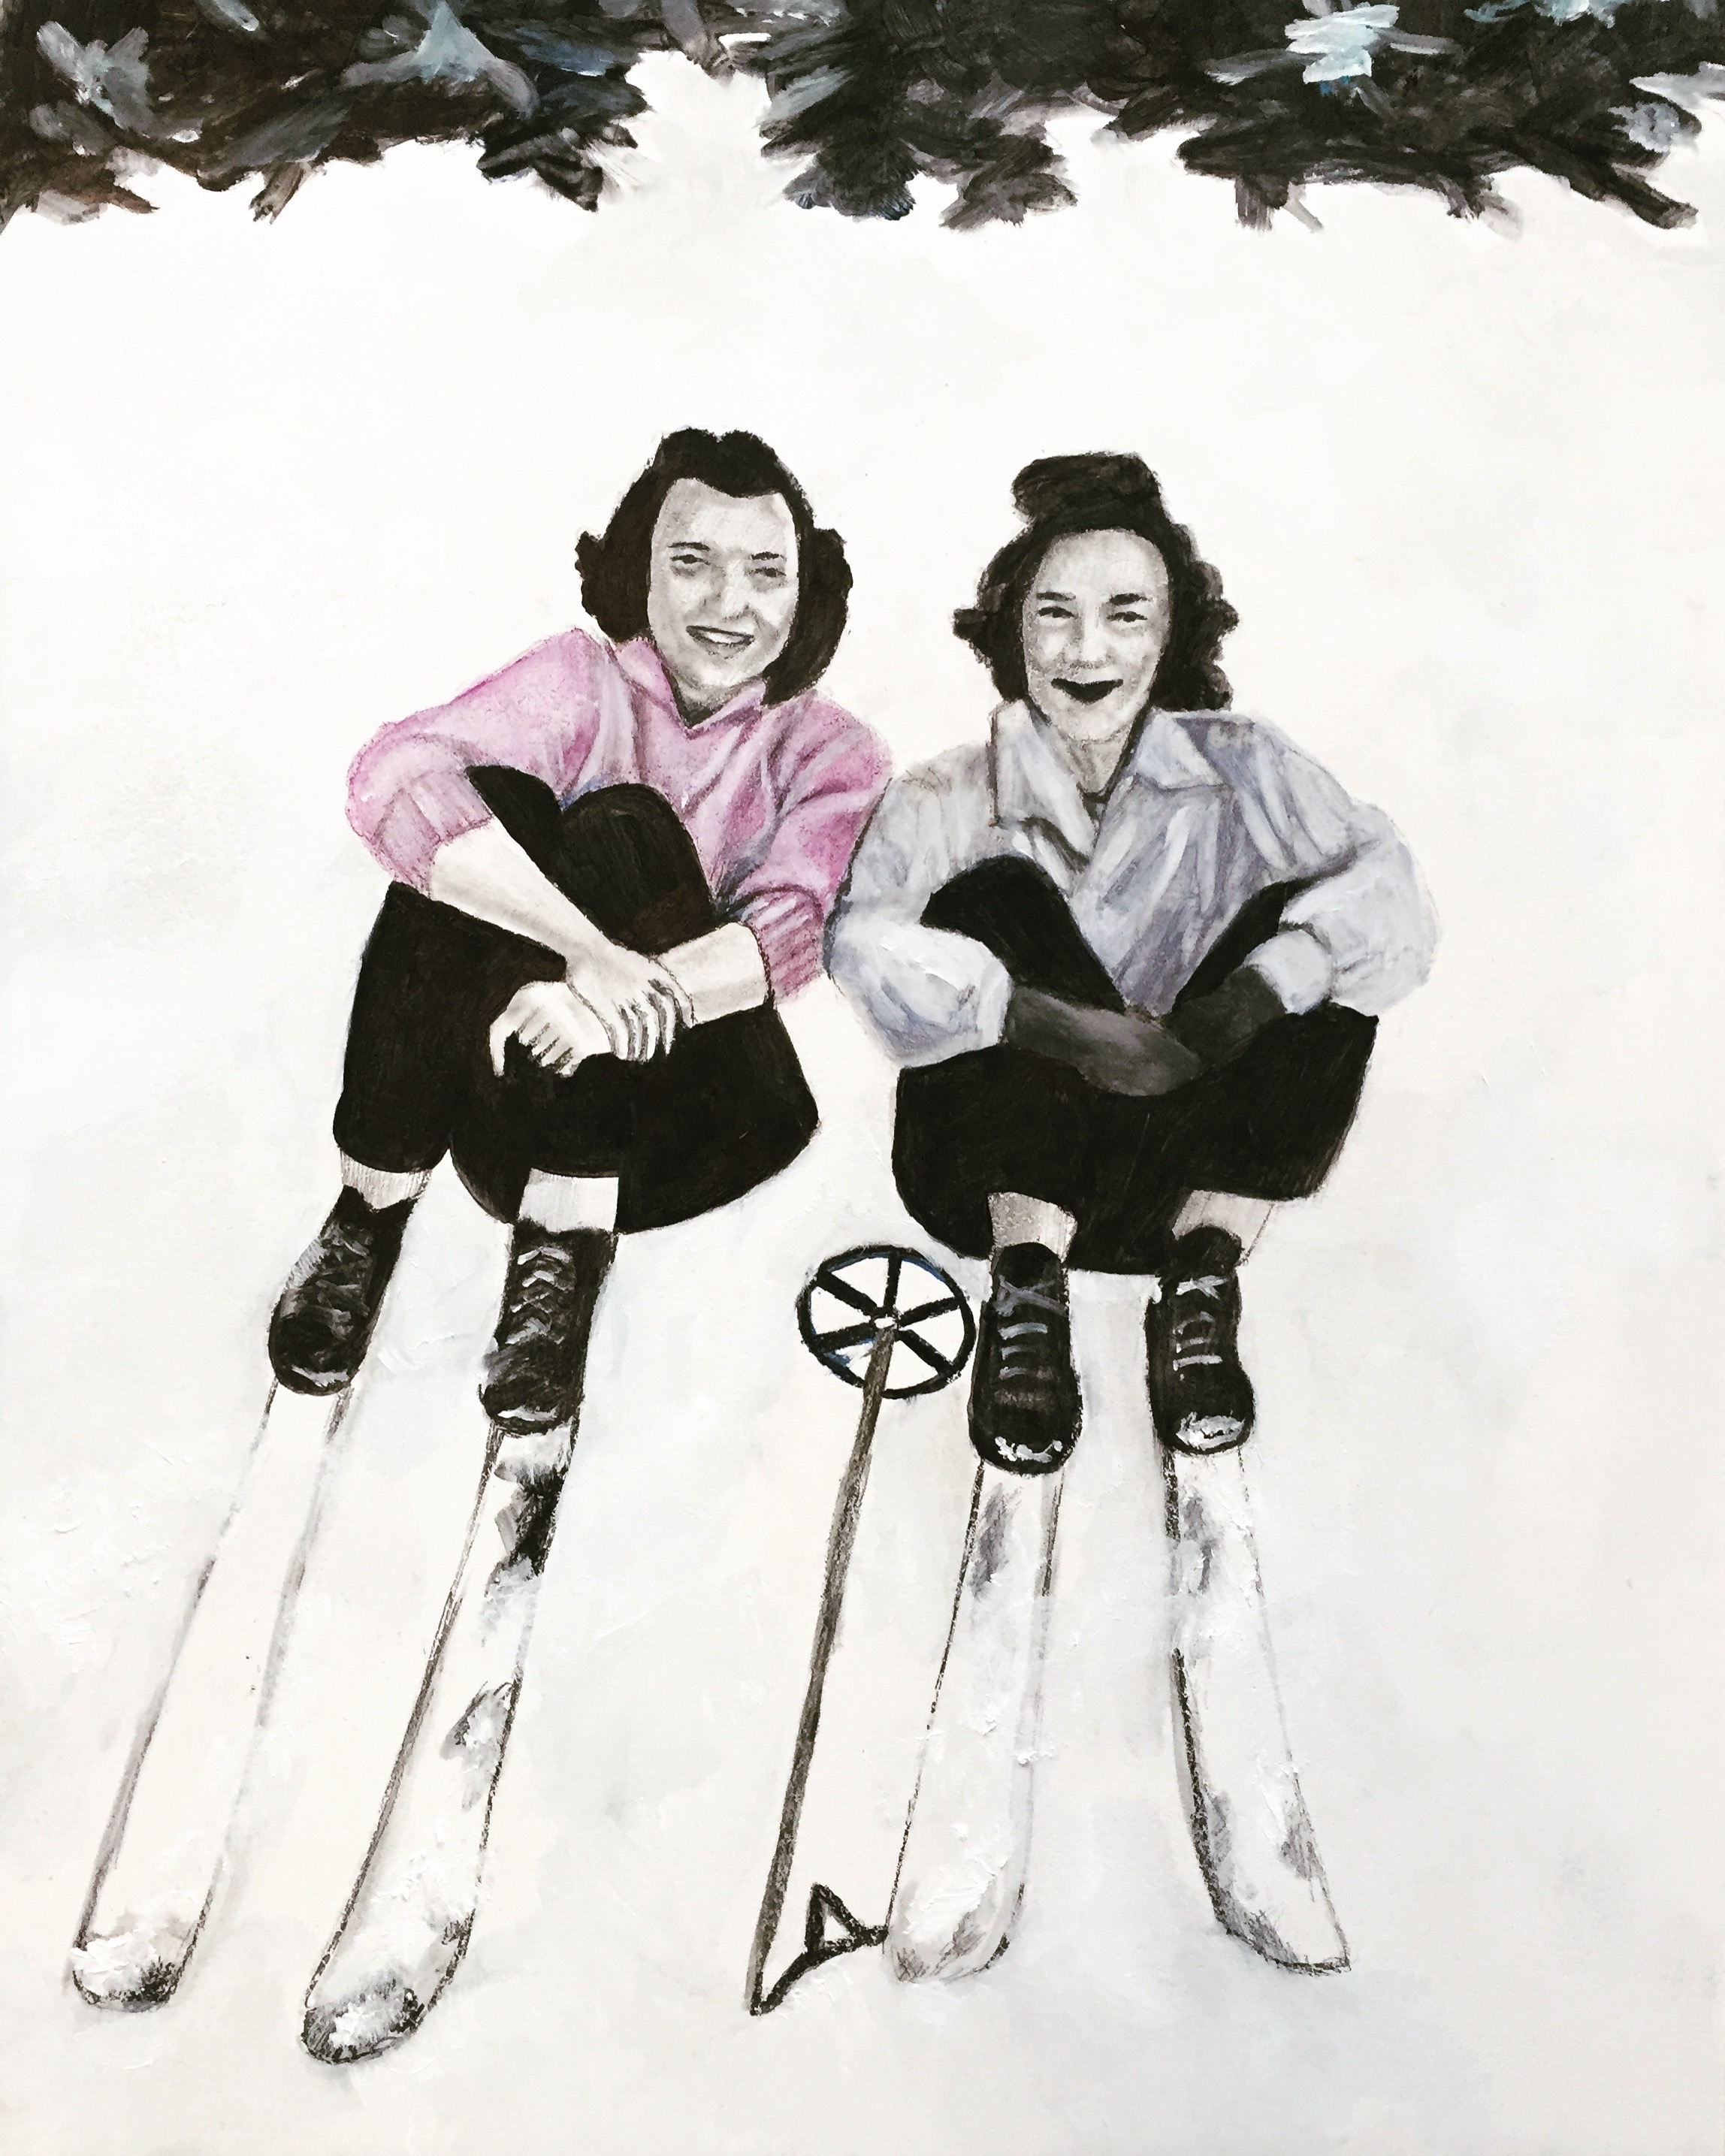 """""""Mary and June Skiing, 1953,"""" Oil, Ink, and Pencil on Primed Wooden Panel, 11 x 14 inches"""